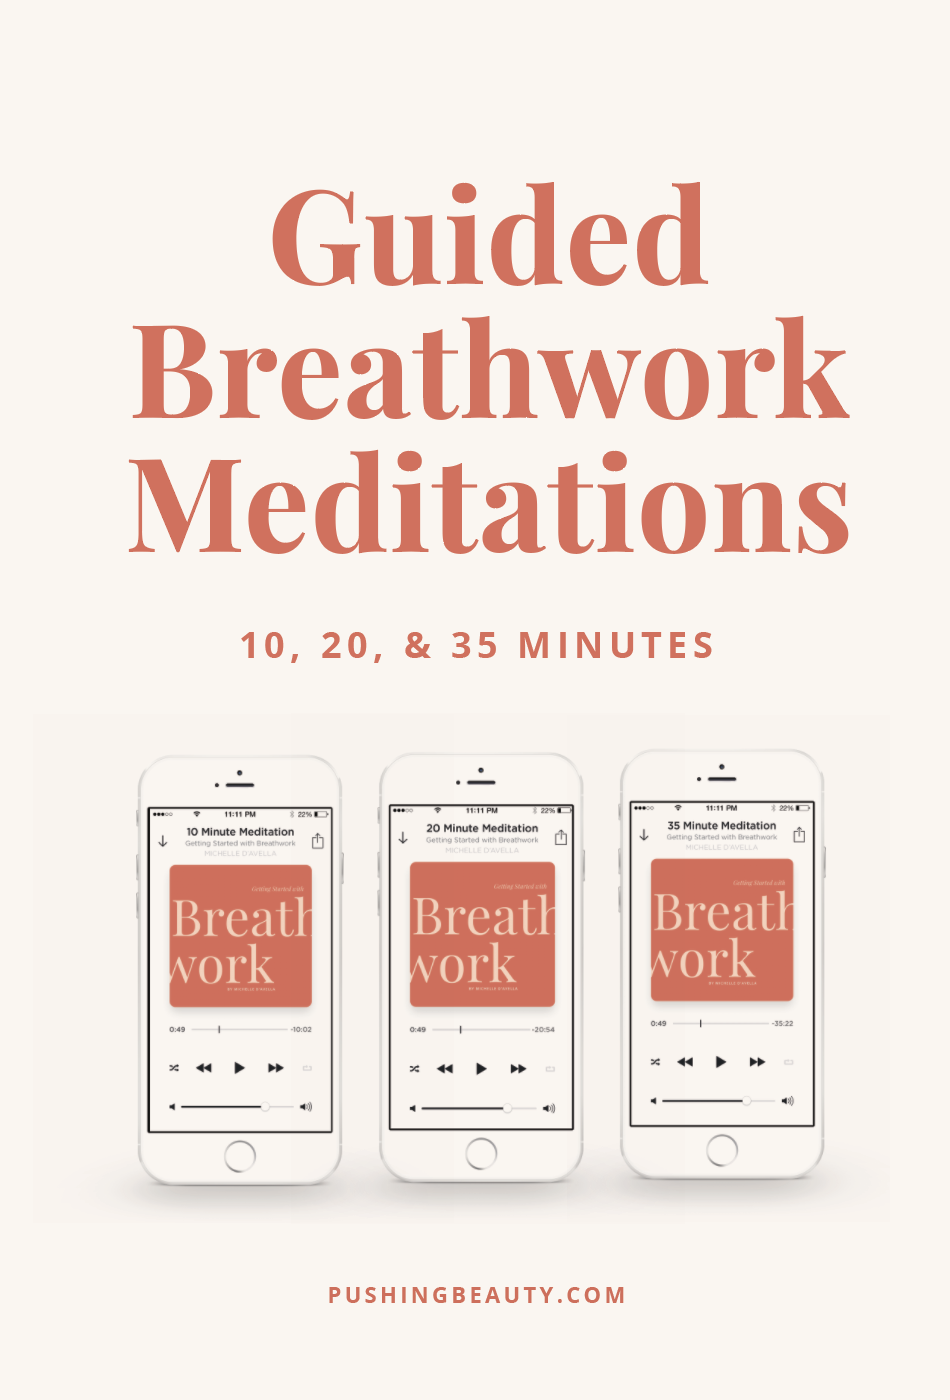 GETTING-STARTED-WITH-BREATHWORK-02.png